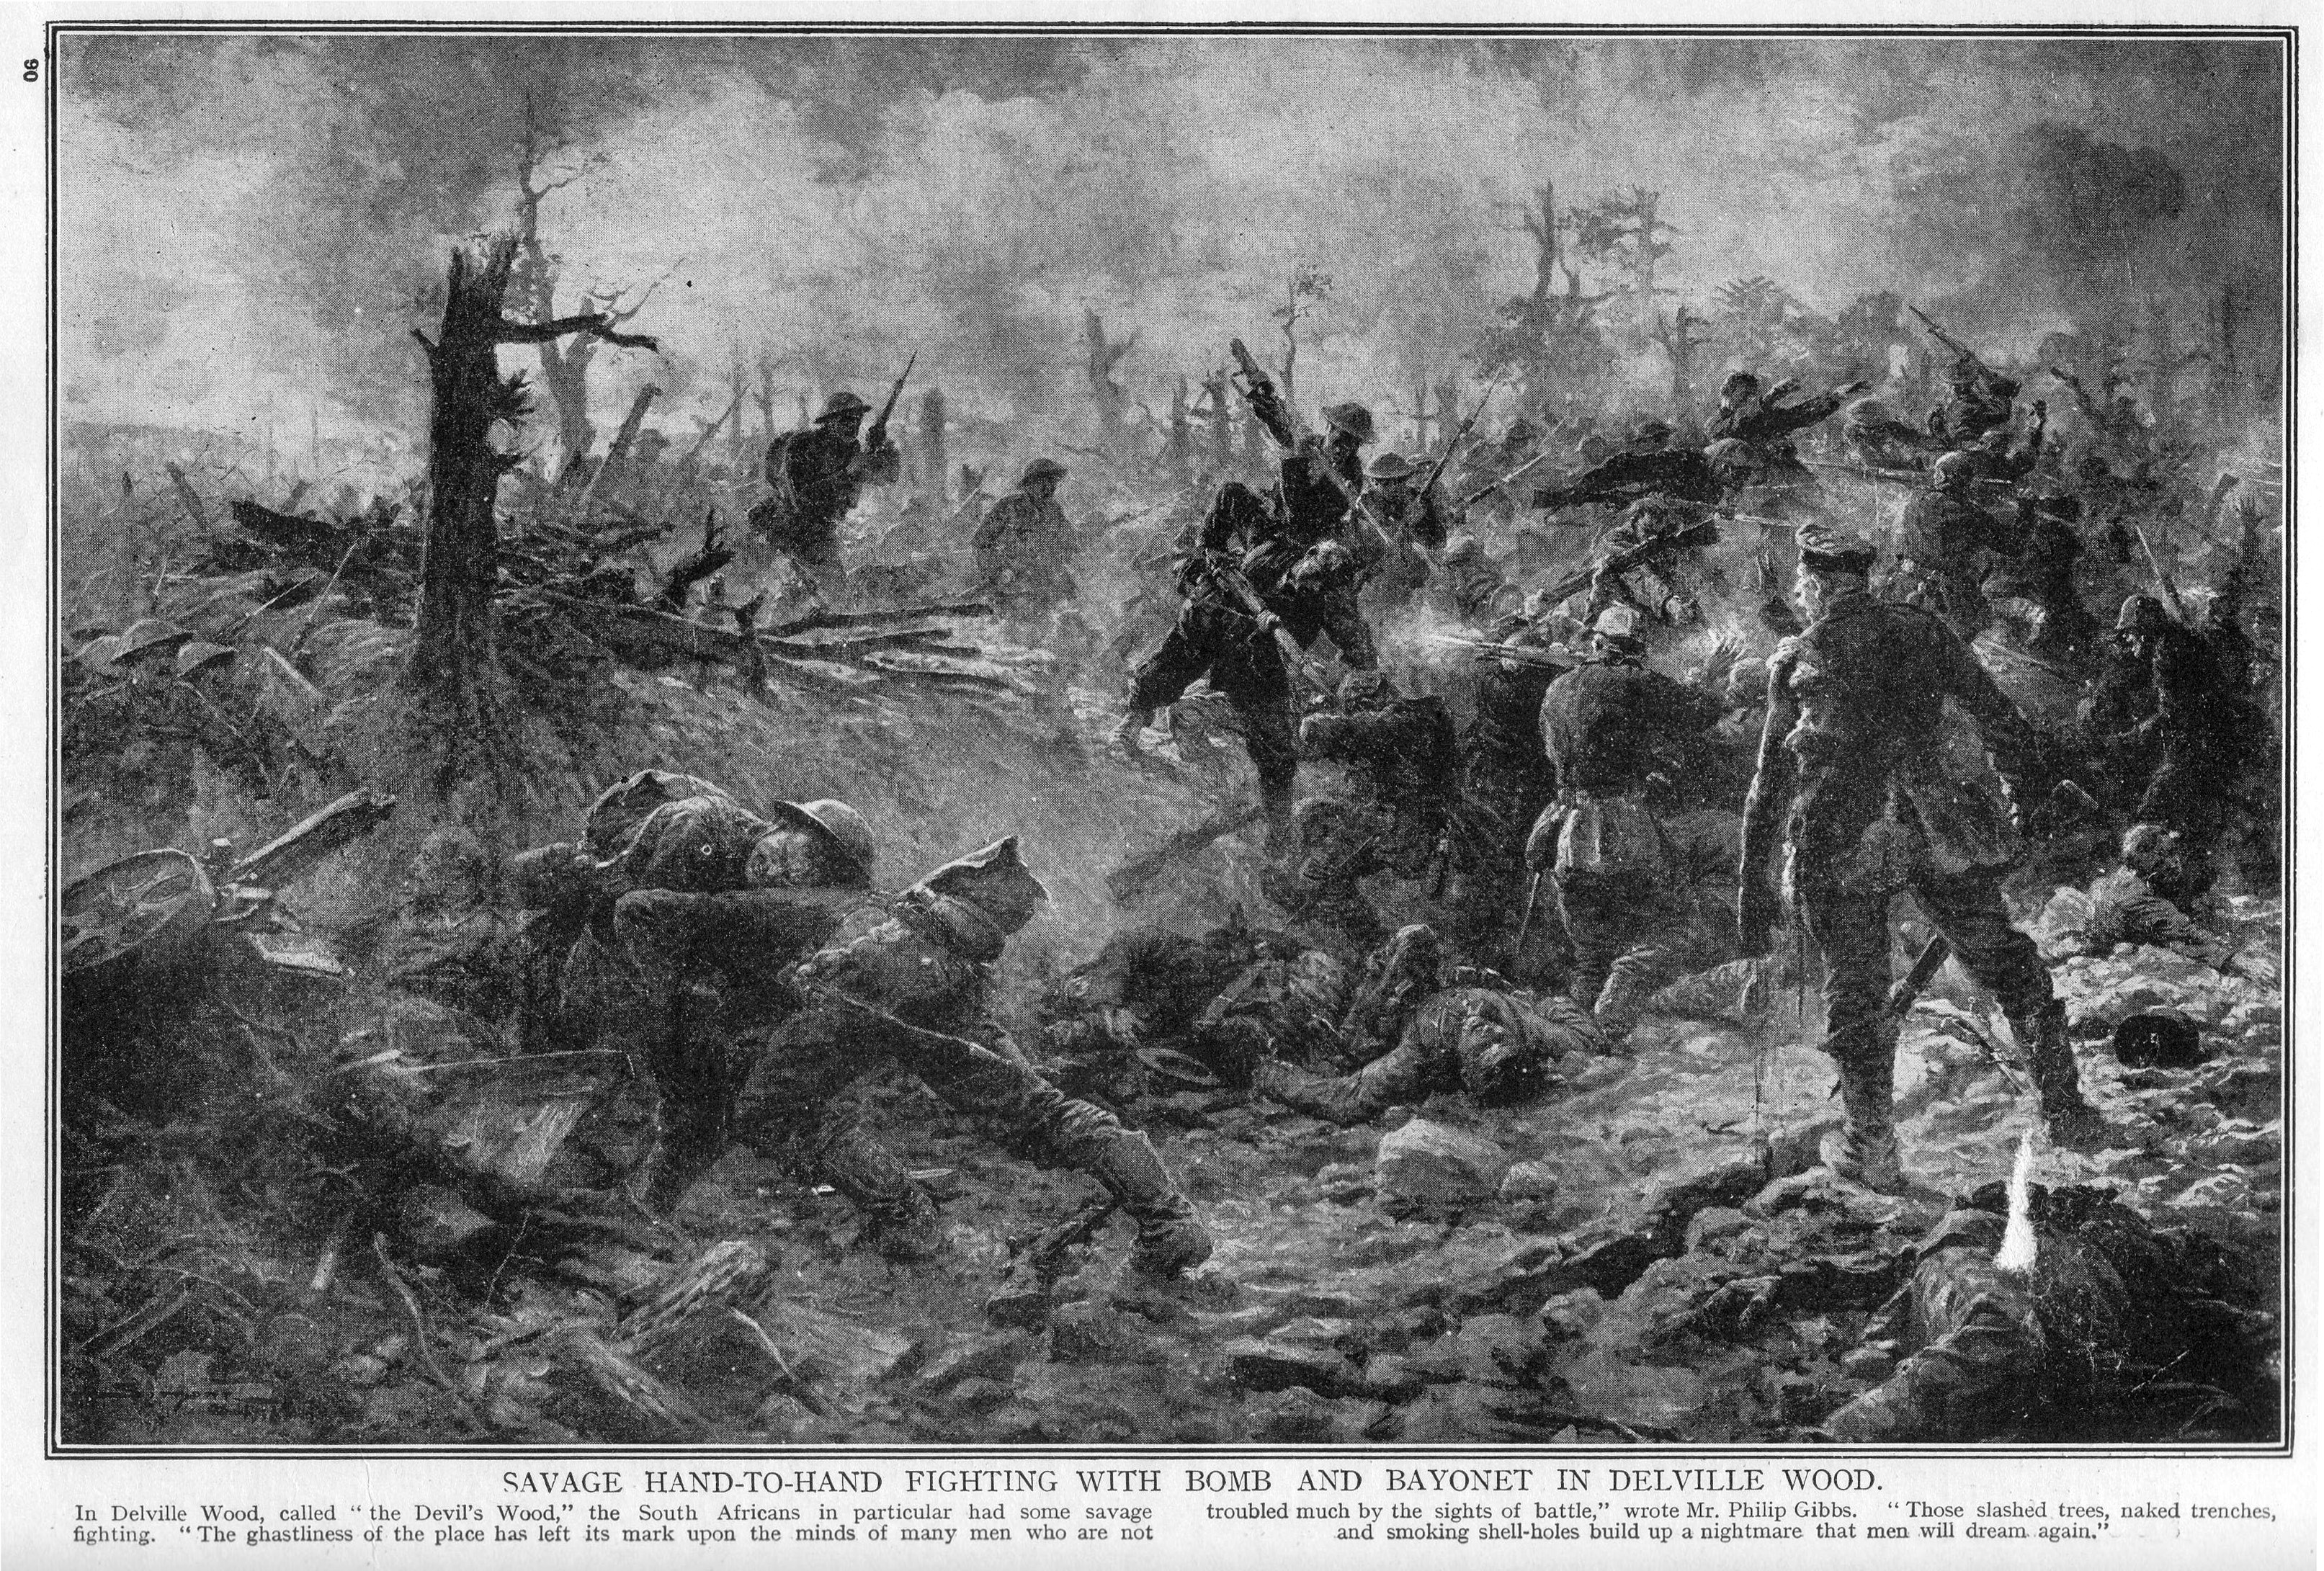 Military Artist drawing of the Battle of Delville Wood